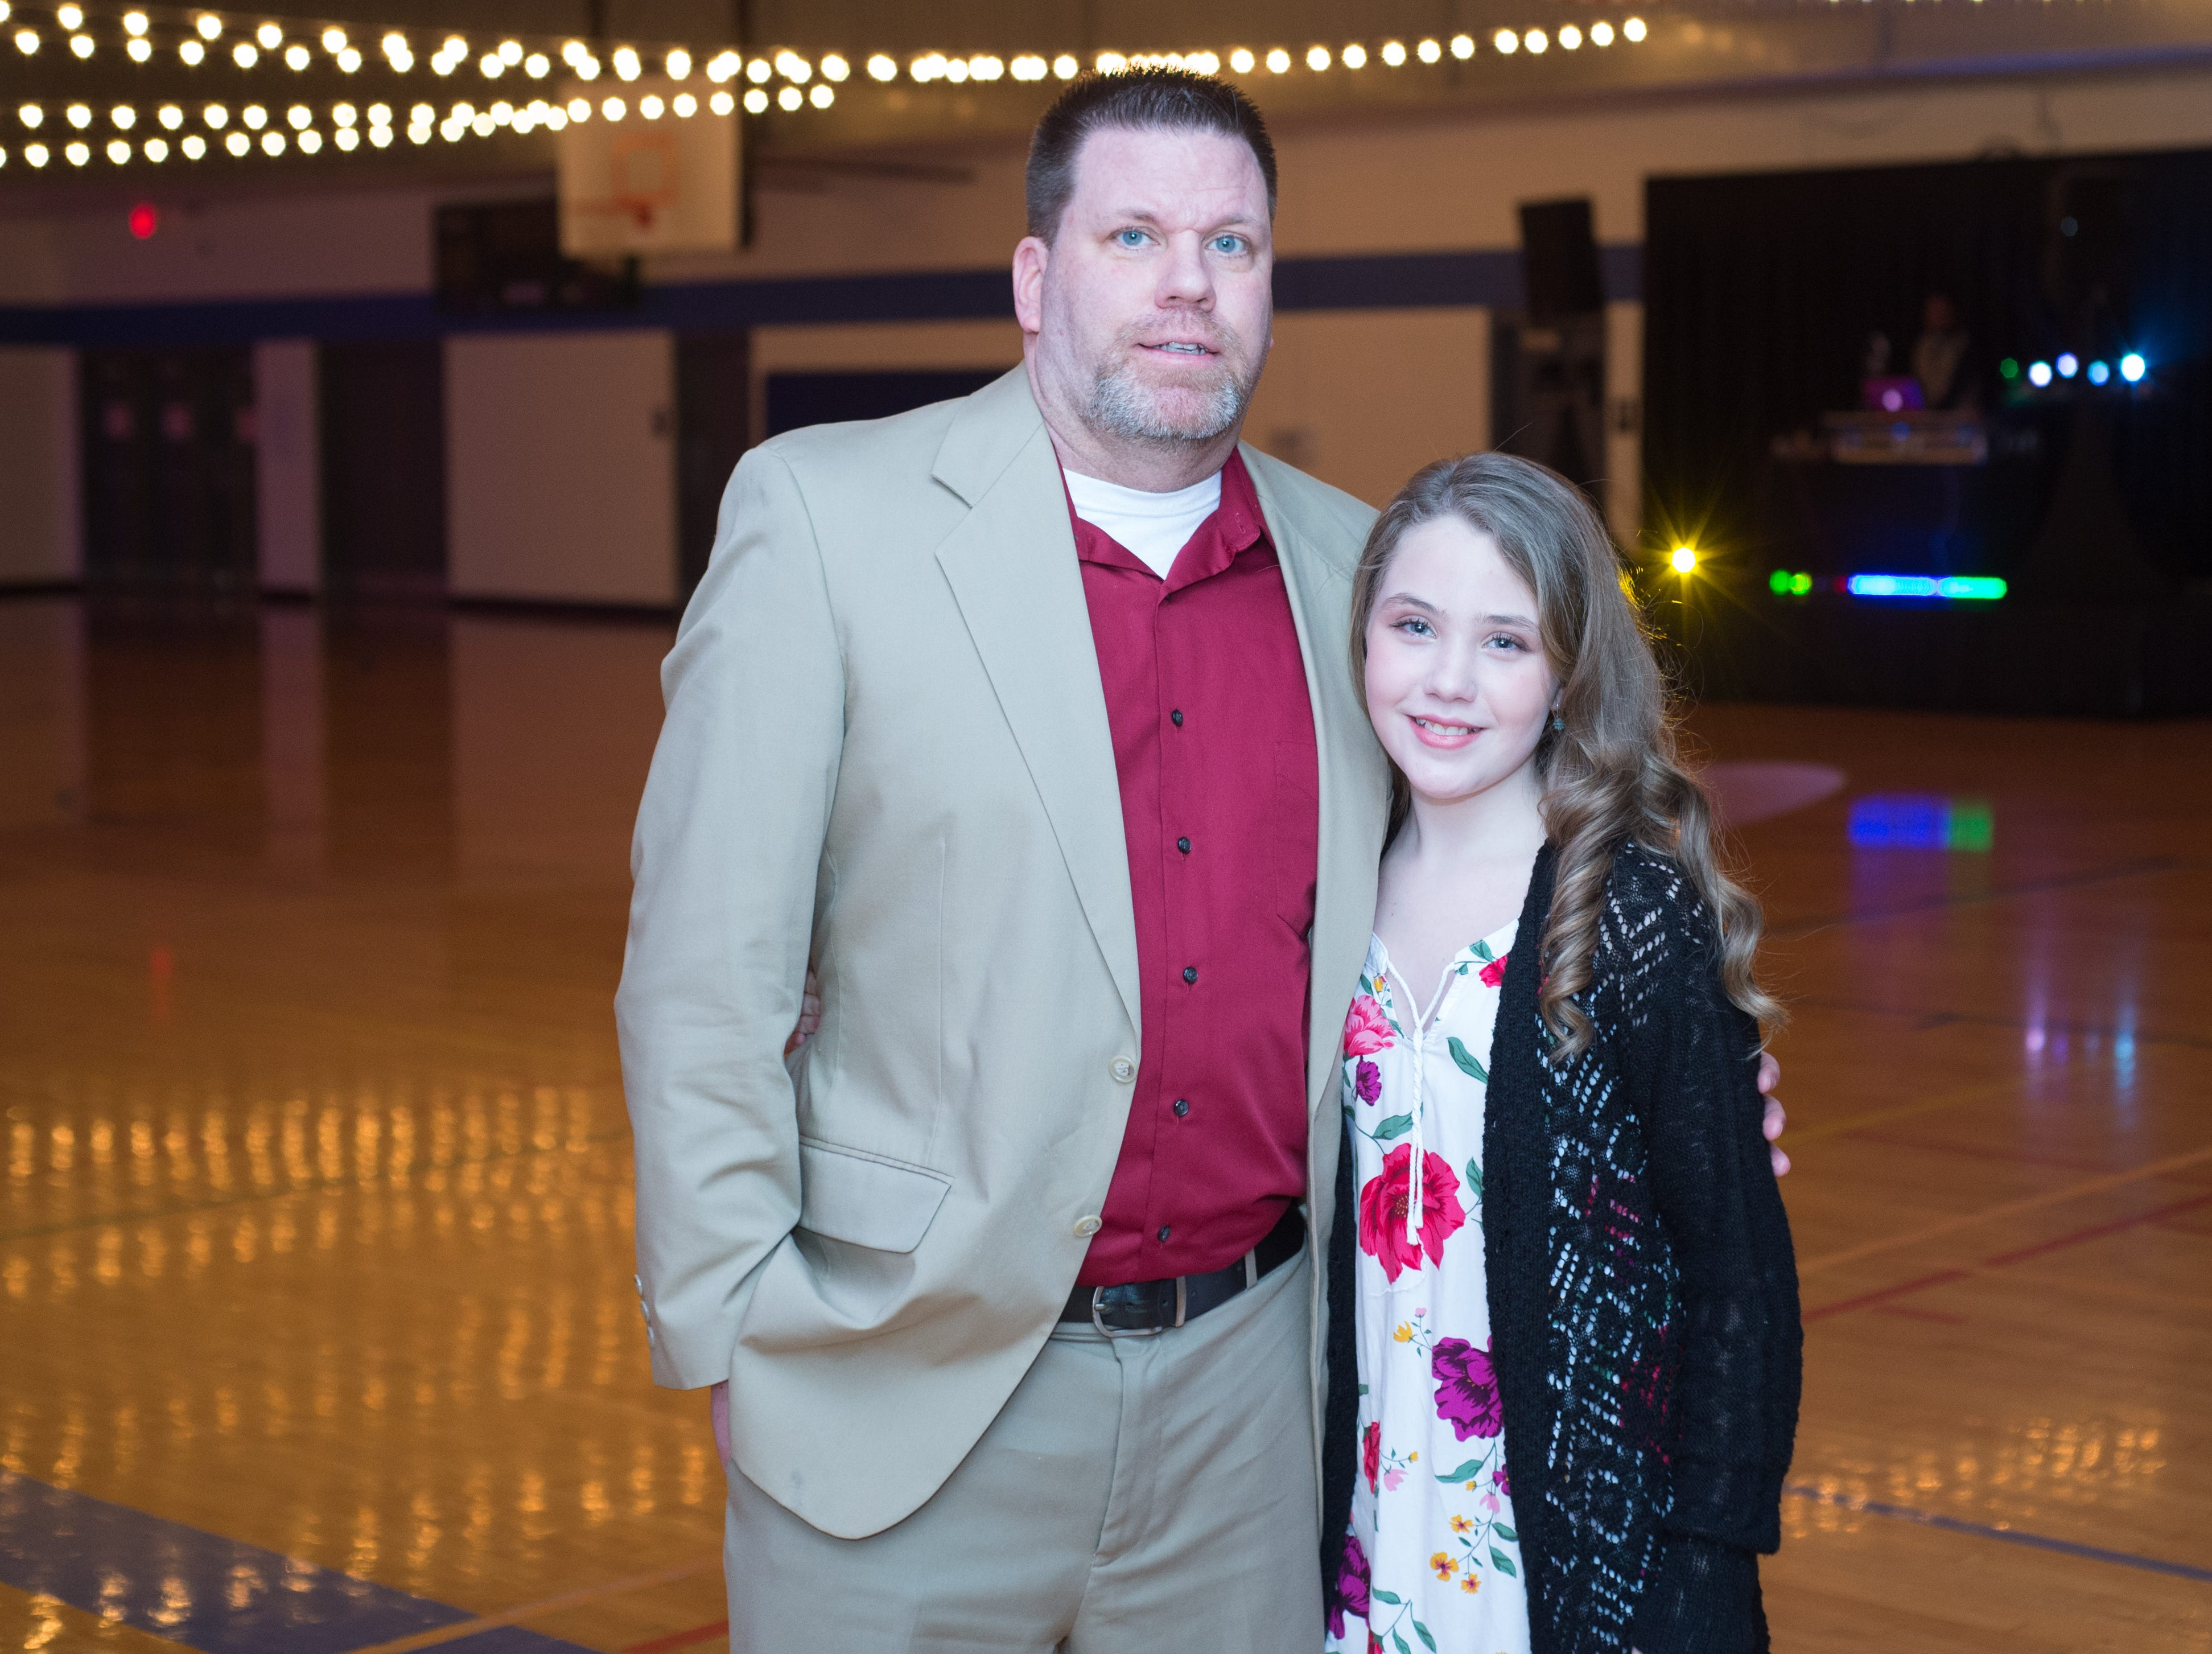 Attendees enjoy a Daddy Daughter Dance held at Delmas Long Community Center on Saturday, Feb. 2, 2019.